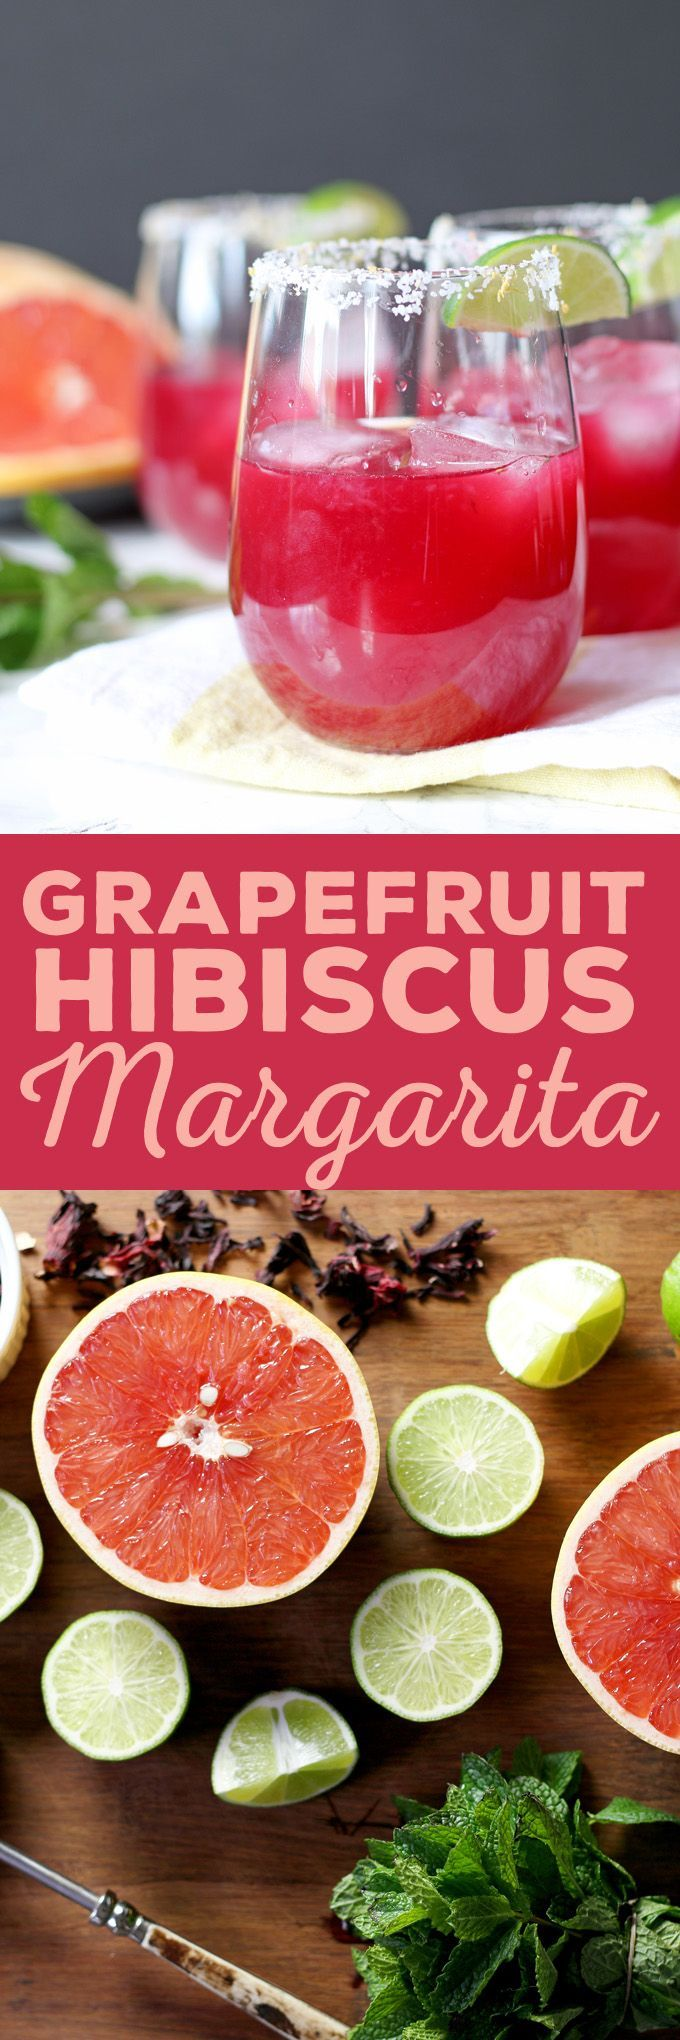 Grapefruit Hibiscus Margarita - Fresh grapefruit and lime juice, homemade hibiscus simple syrup and a little muddled mint make this a fun and tropical cocktail!